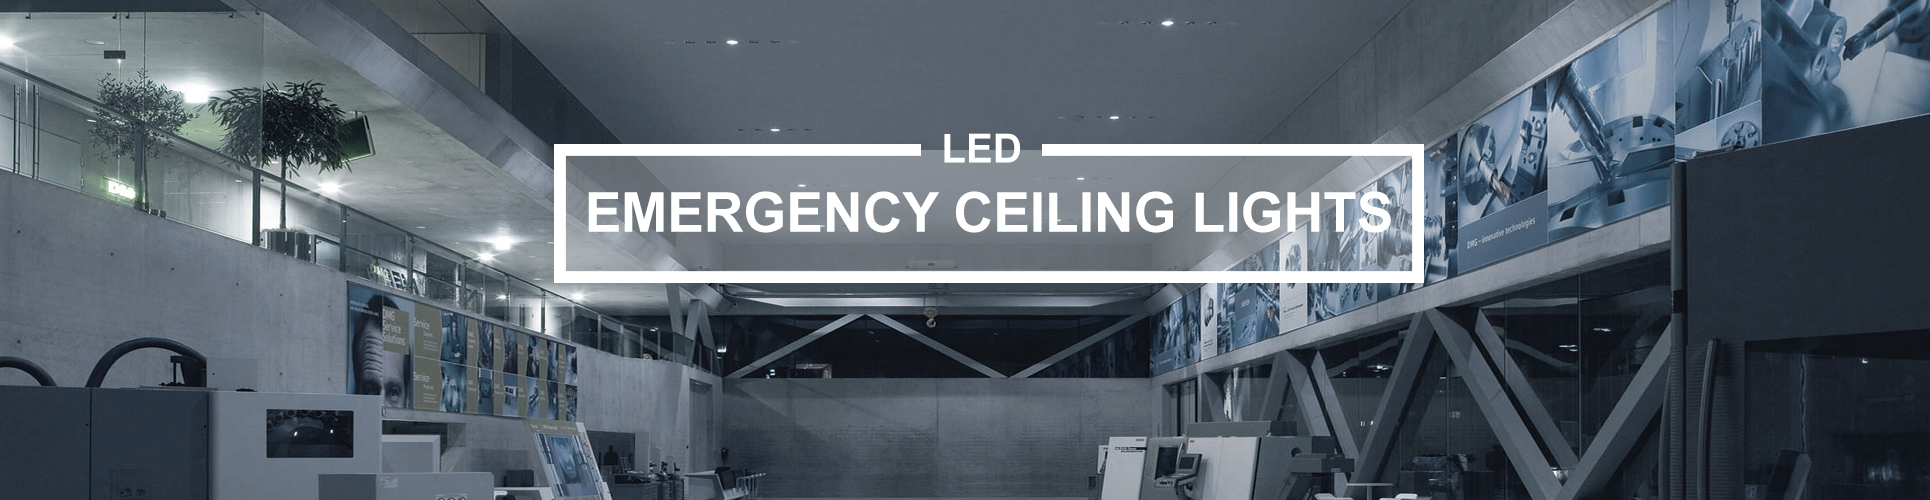 Emergency ceiling lights